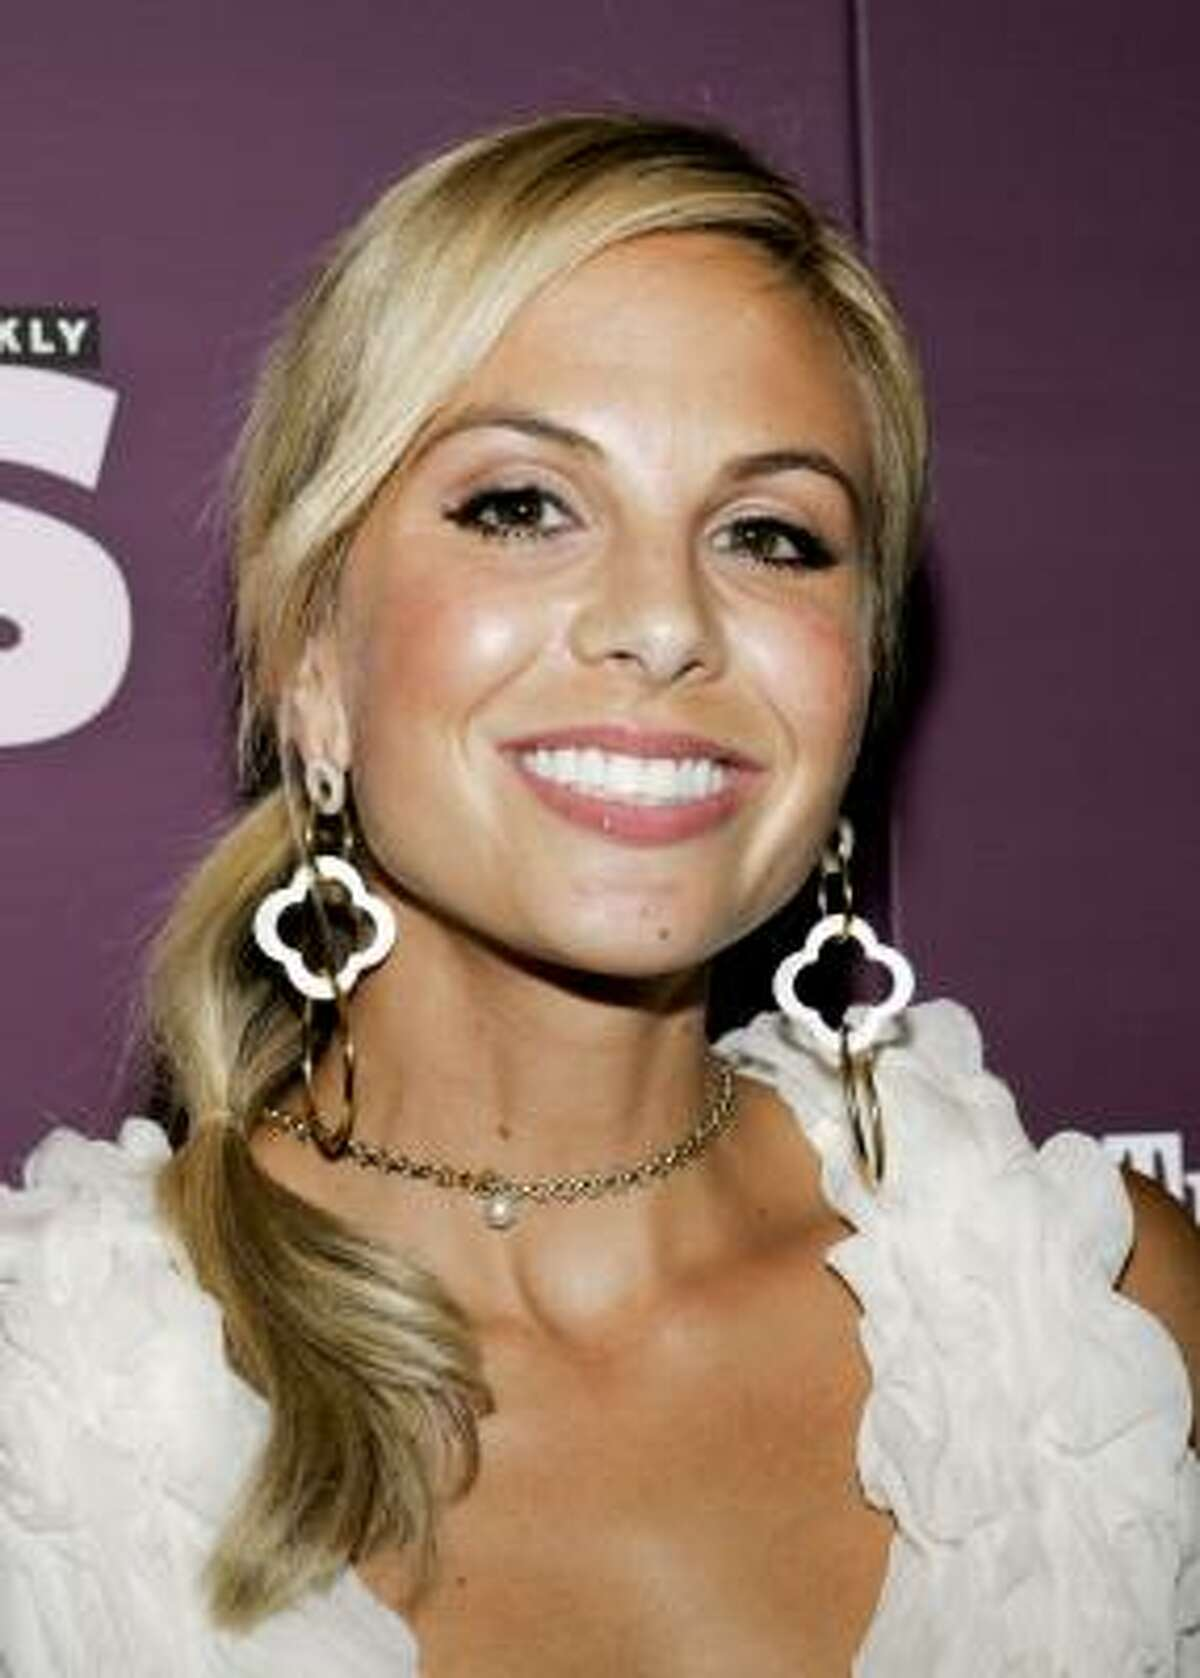 TV host Elisabeth Hasselbeck gave birth to a little boy in August.